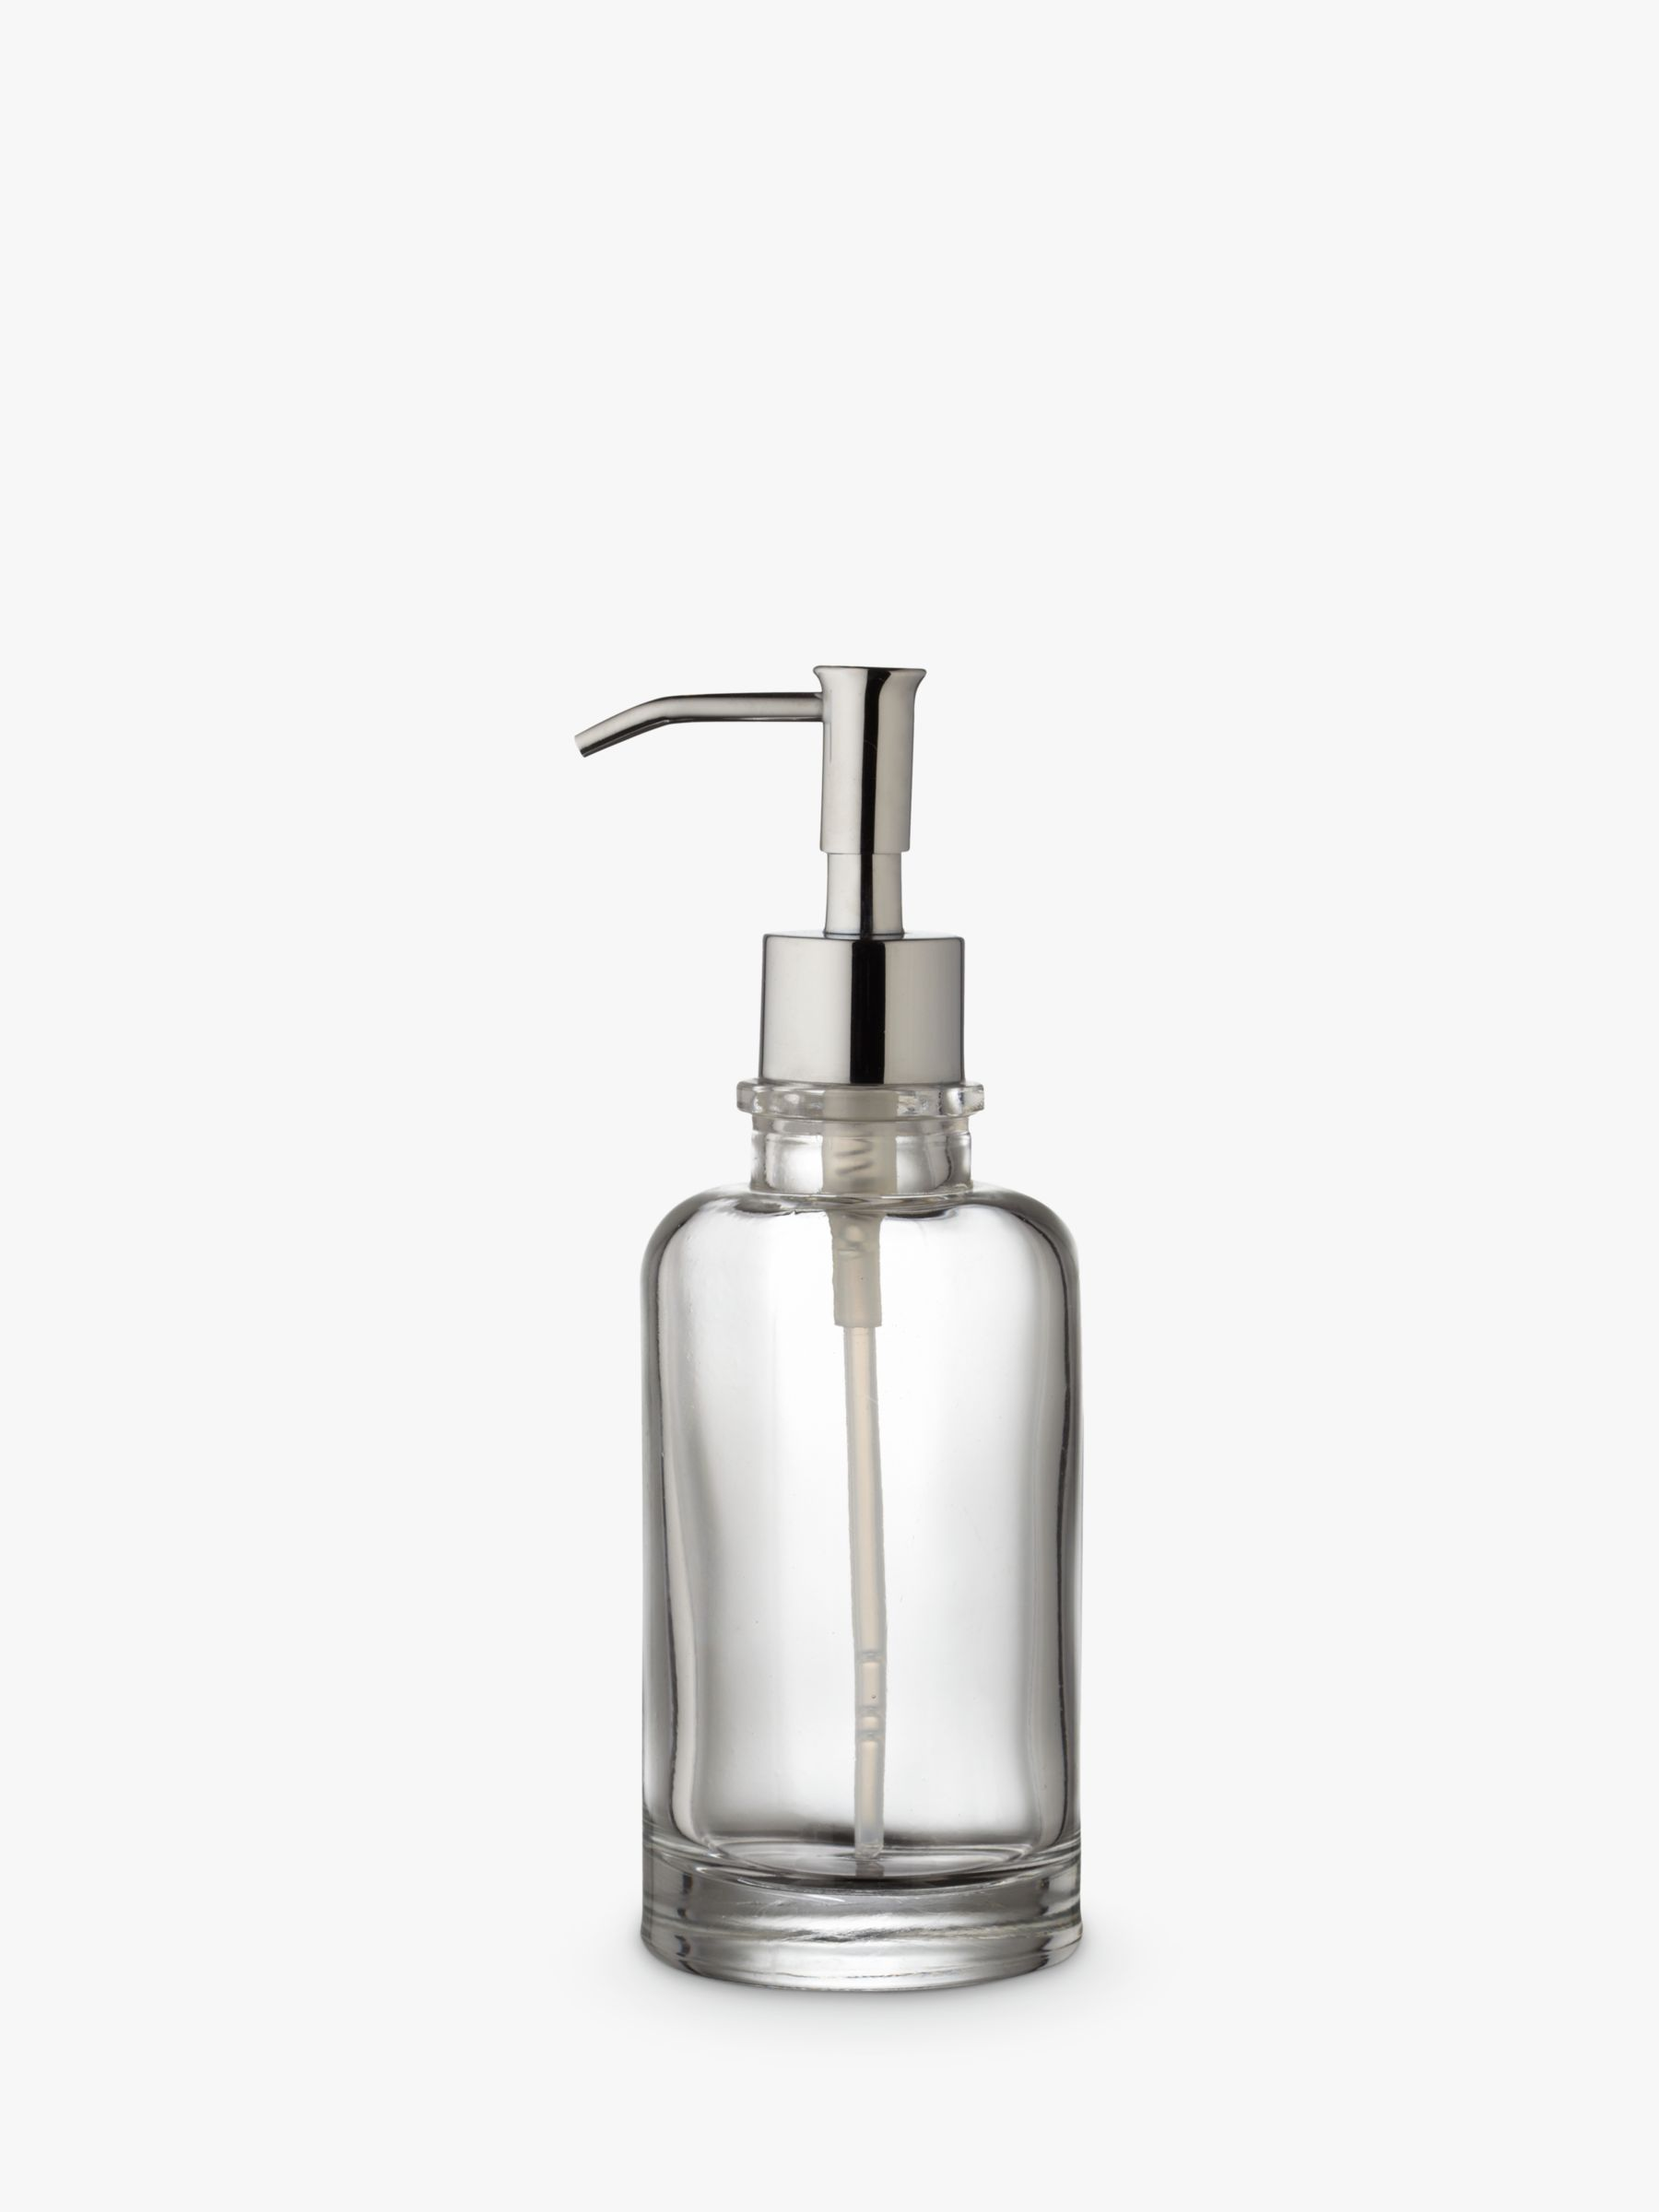 Vintage Bathroom Soap Dispenser Old Fashioned Soap Dispenser Easy Craft Ideas